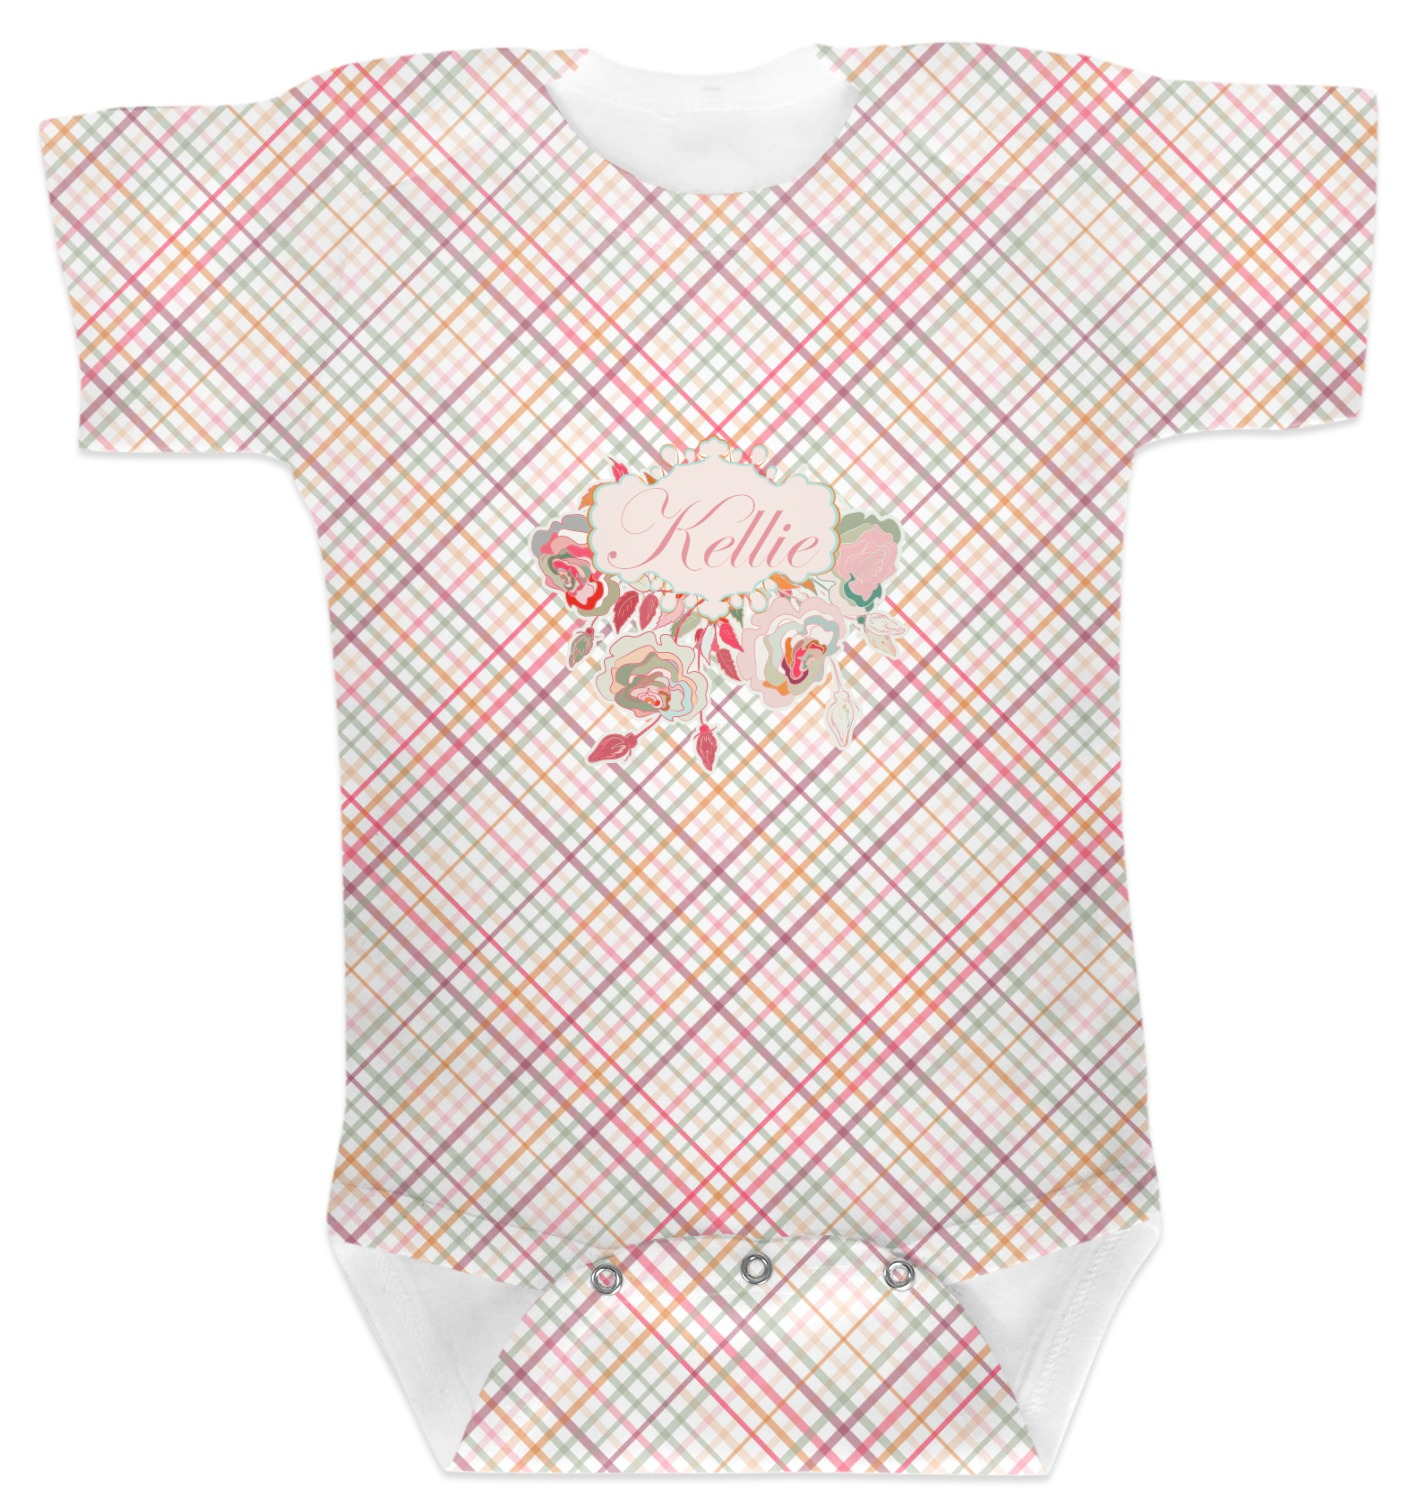 Shop for buffalo plaid baby clothes online at Target. Free shipping on purchases over $35 and save 5% every day with your Target REDcard.